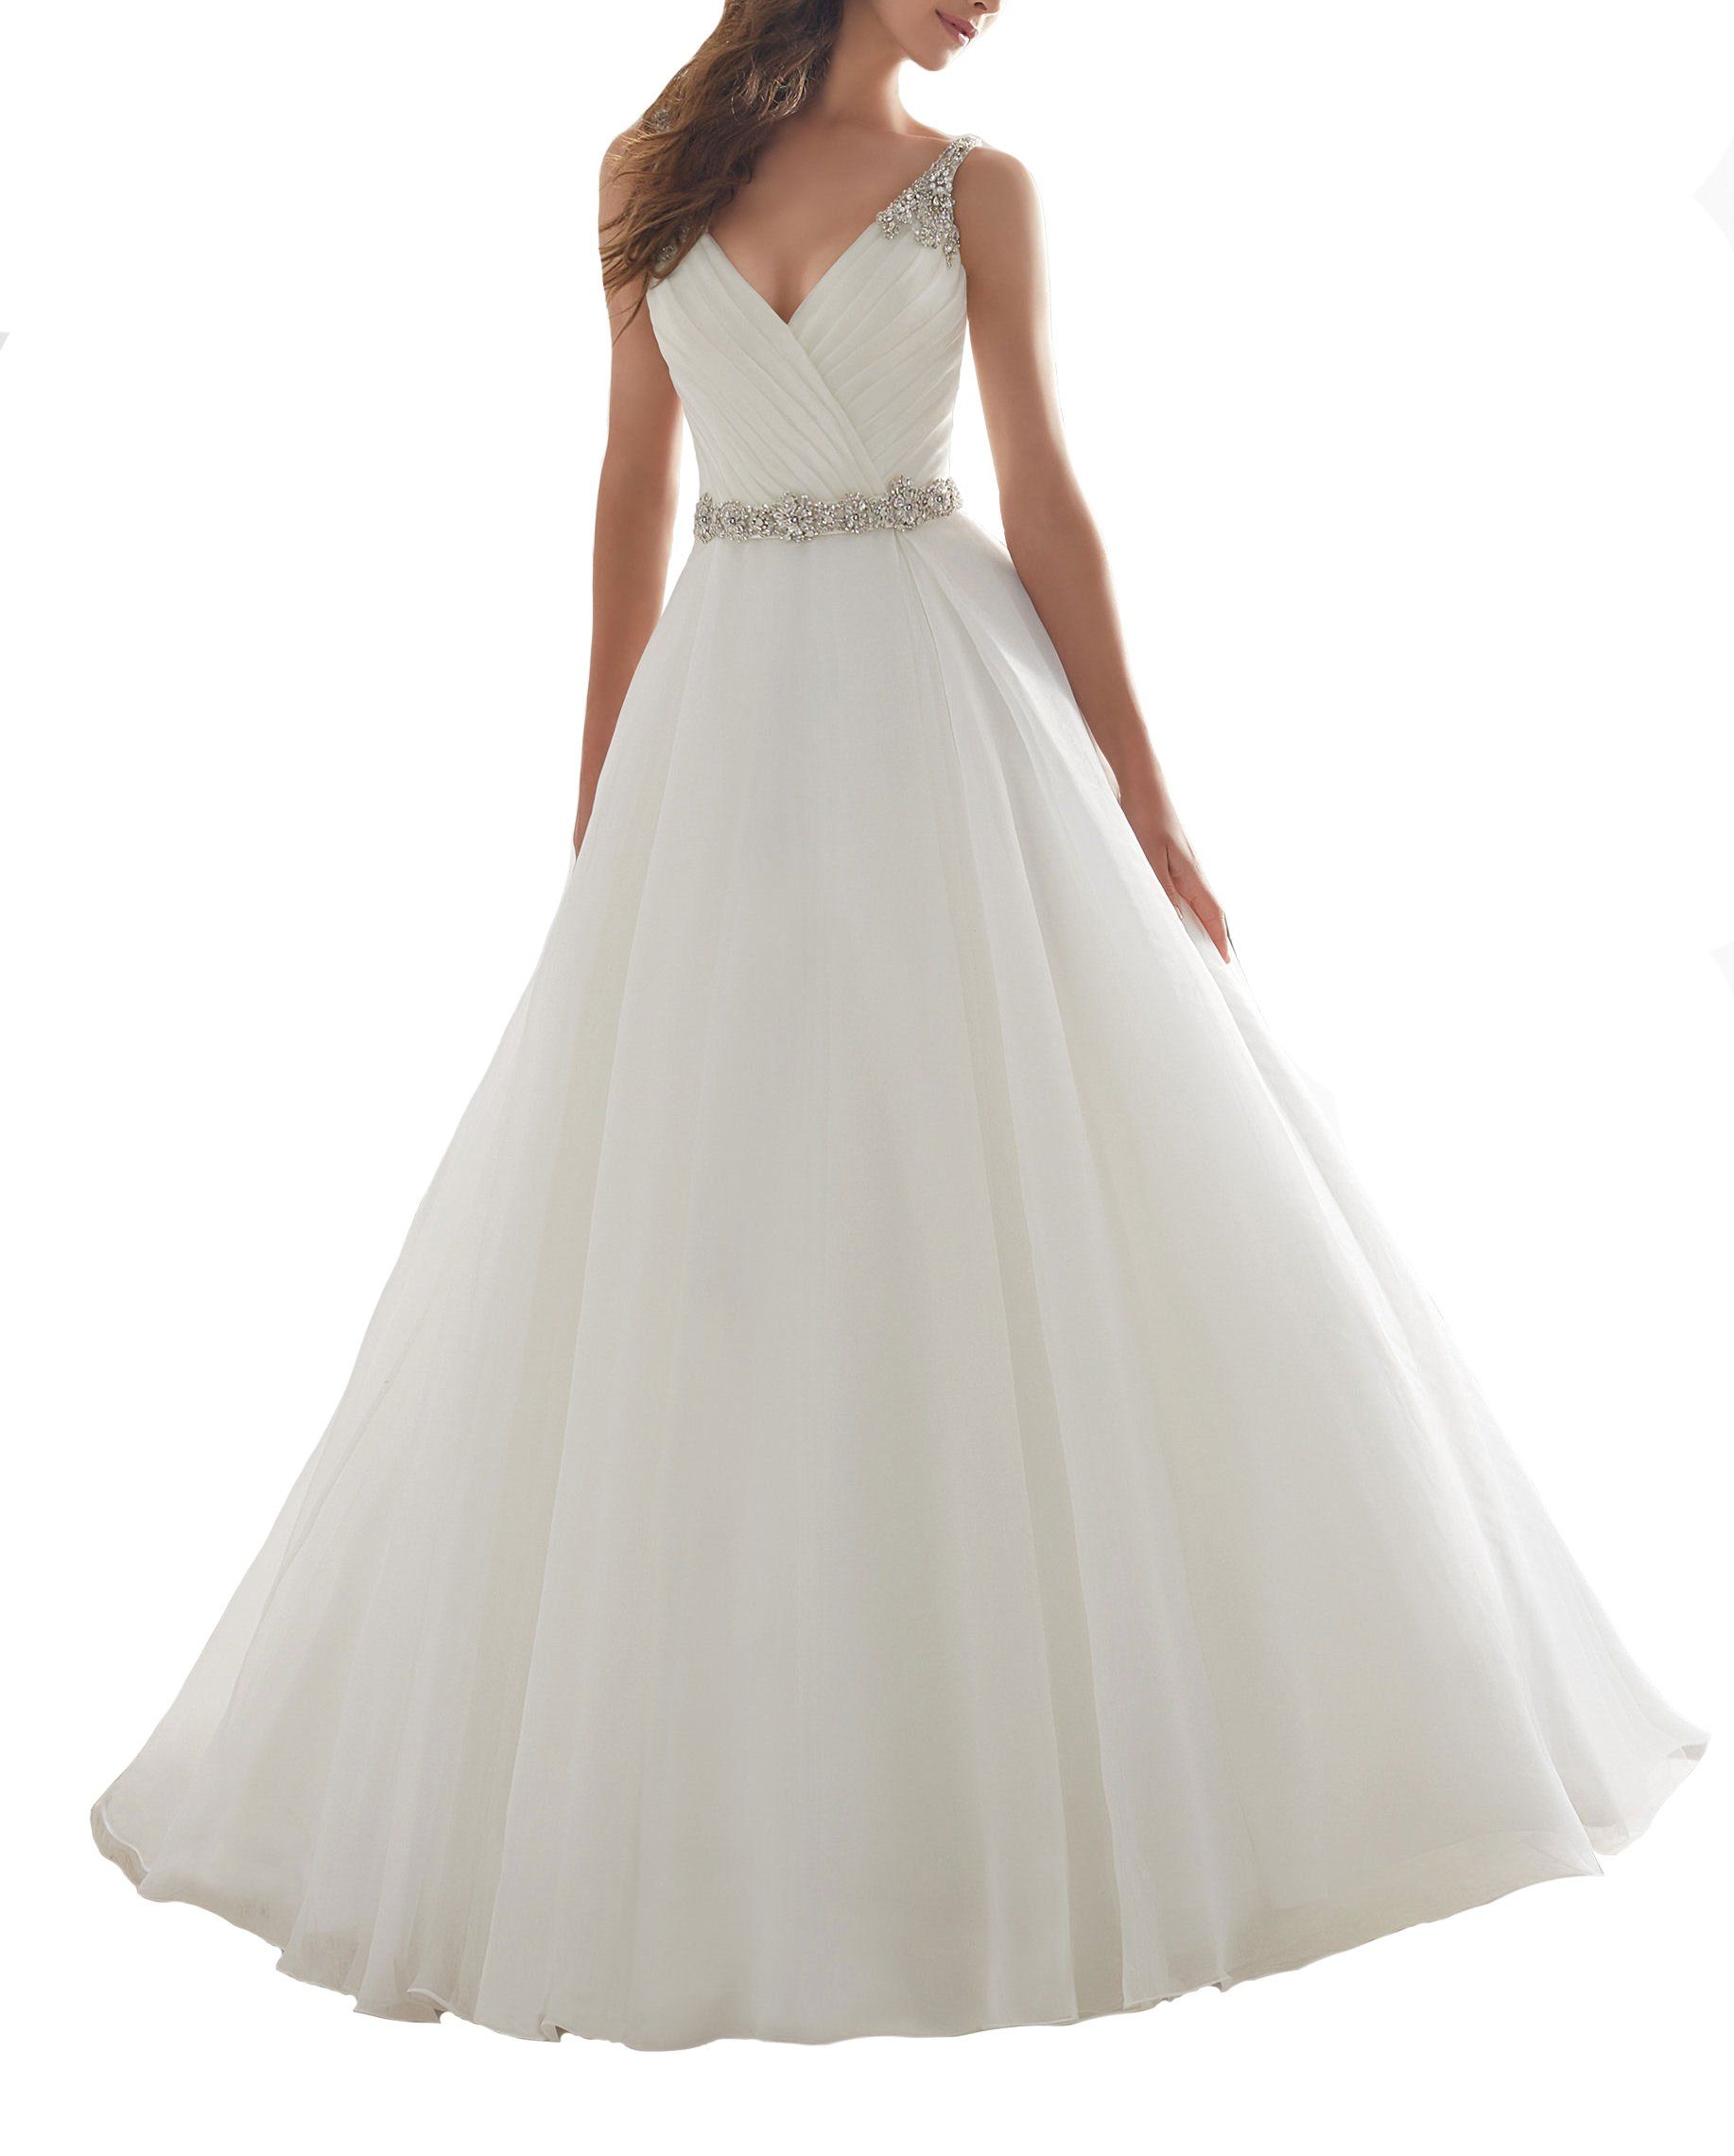 Elegant V-Neck Backless Wedding Bridal Dress Sleeveless Beaded Long Wedding Gown For Women US2